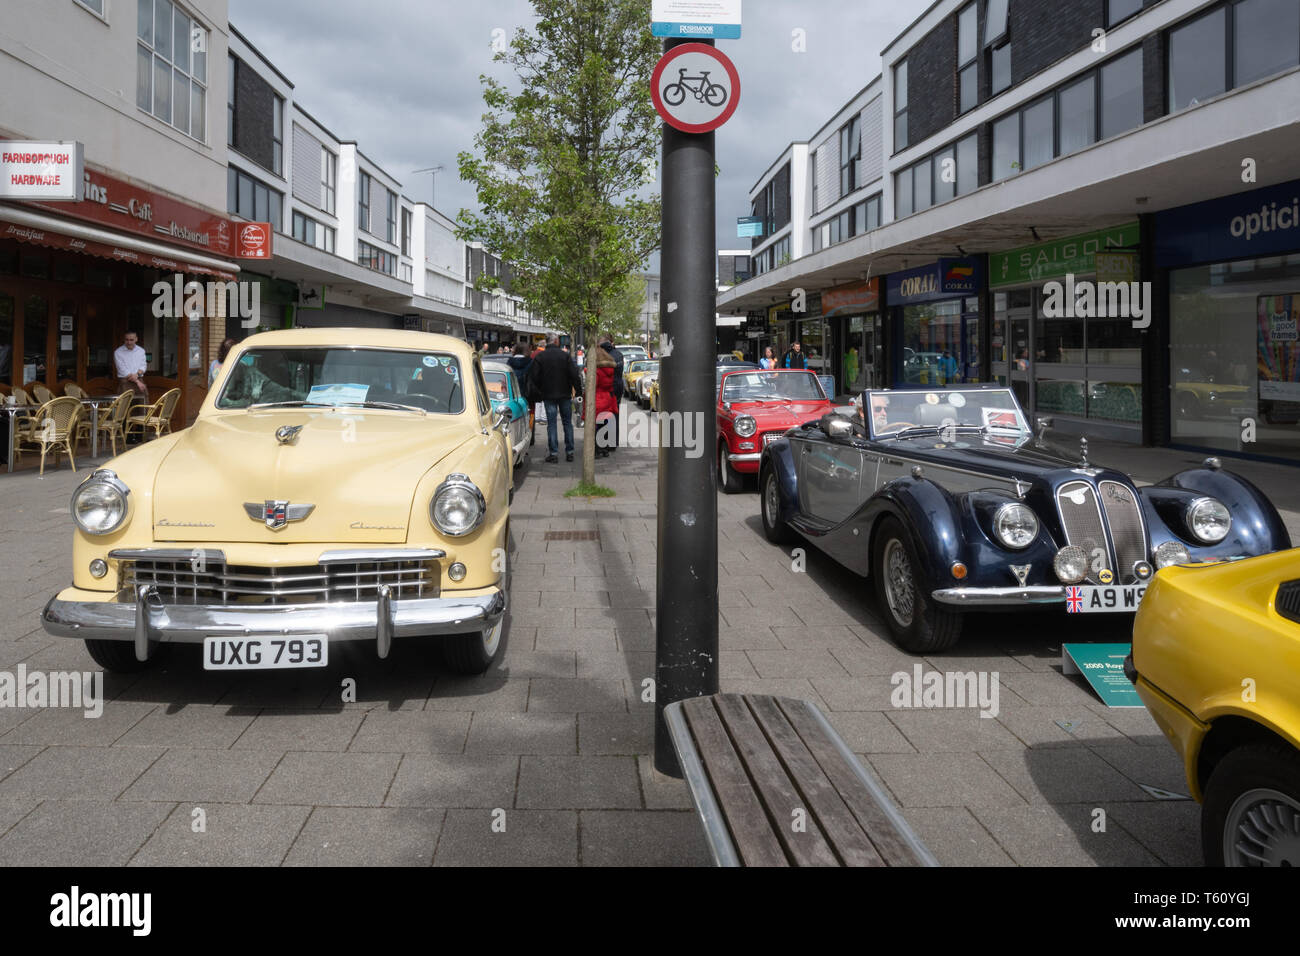 Farnborough Car Show, April 2019, classic motor vehicles on display in the town centre, Hampshire, UK - Stock Image